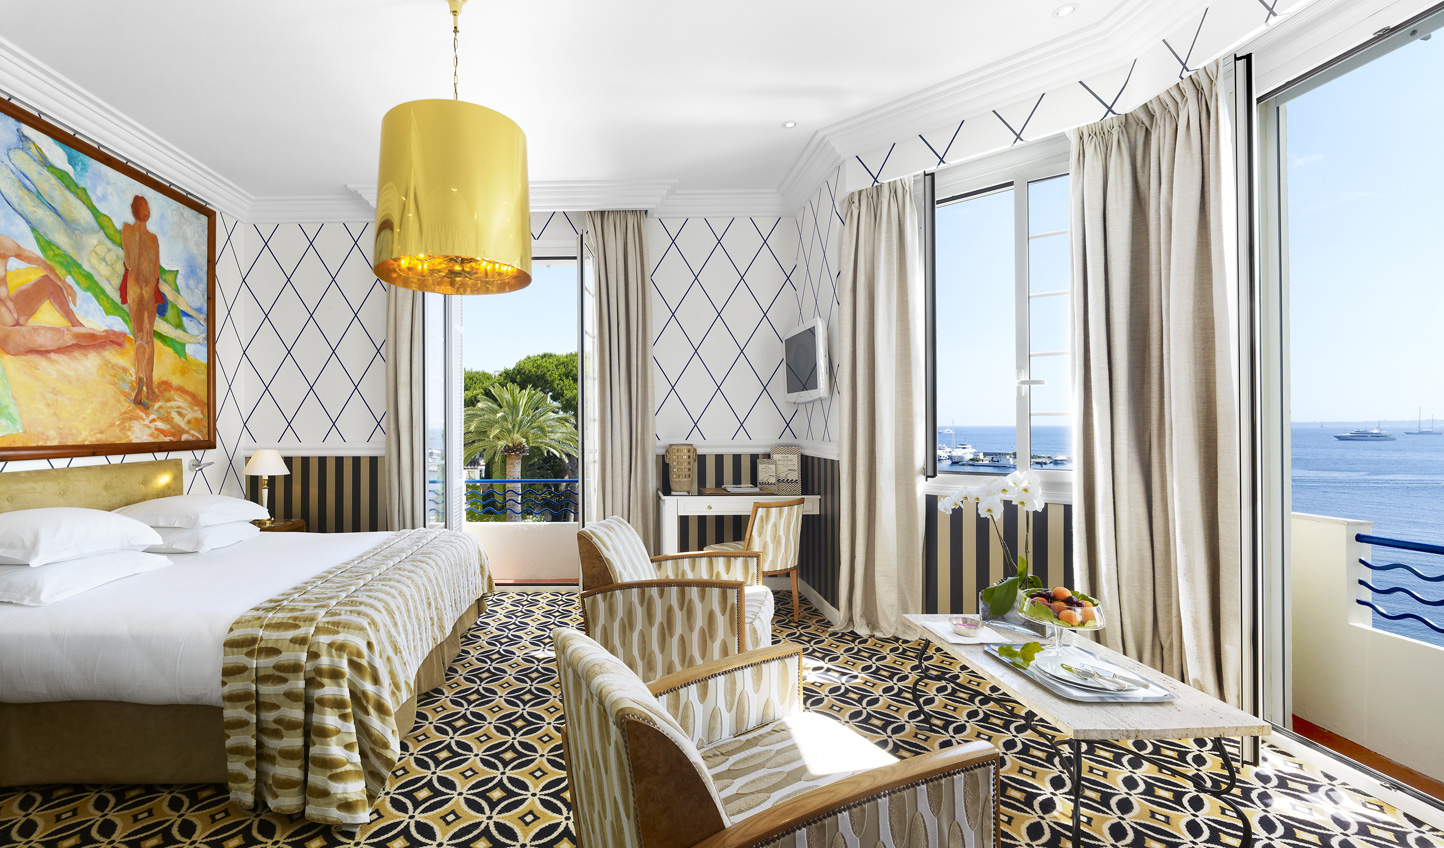 Sea views are a must at Belles Rives